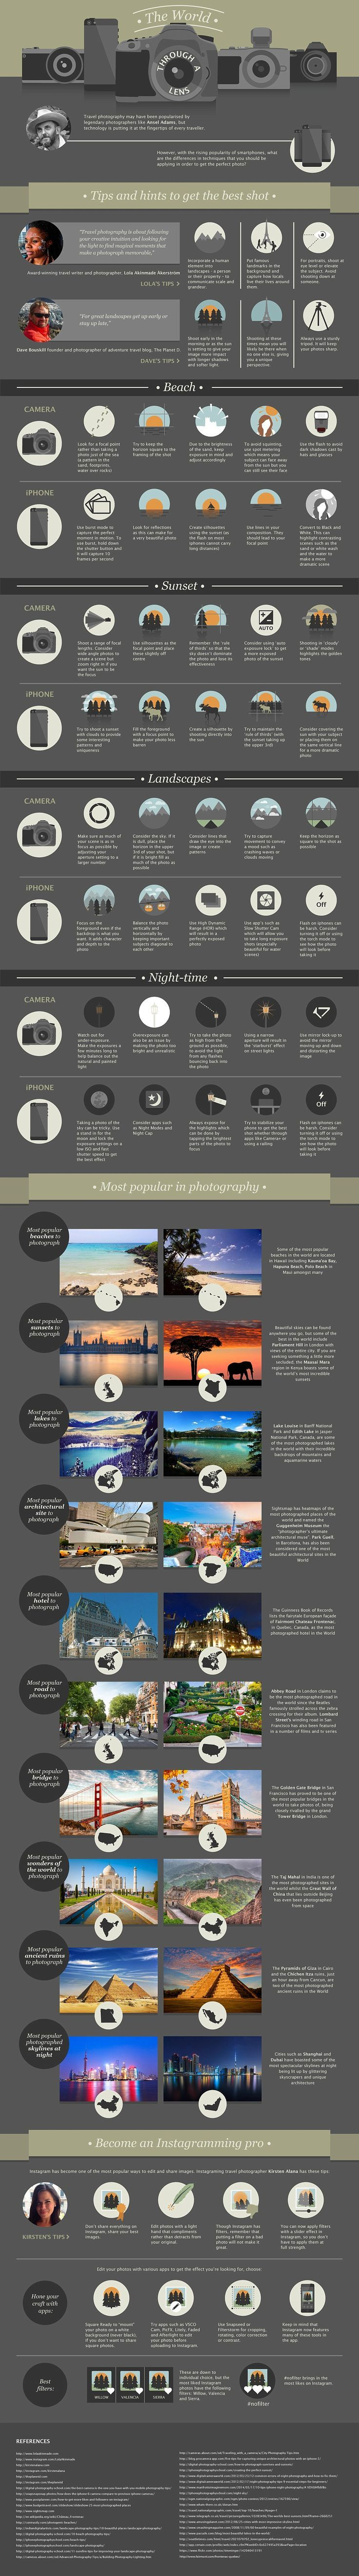 Fairmont Hotels' infographic guide to shooting holiday photos plus how to Instagram like a pro   Daily Mail Online